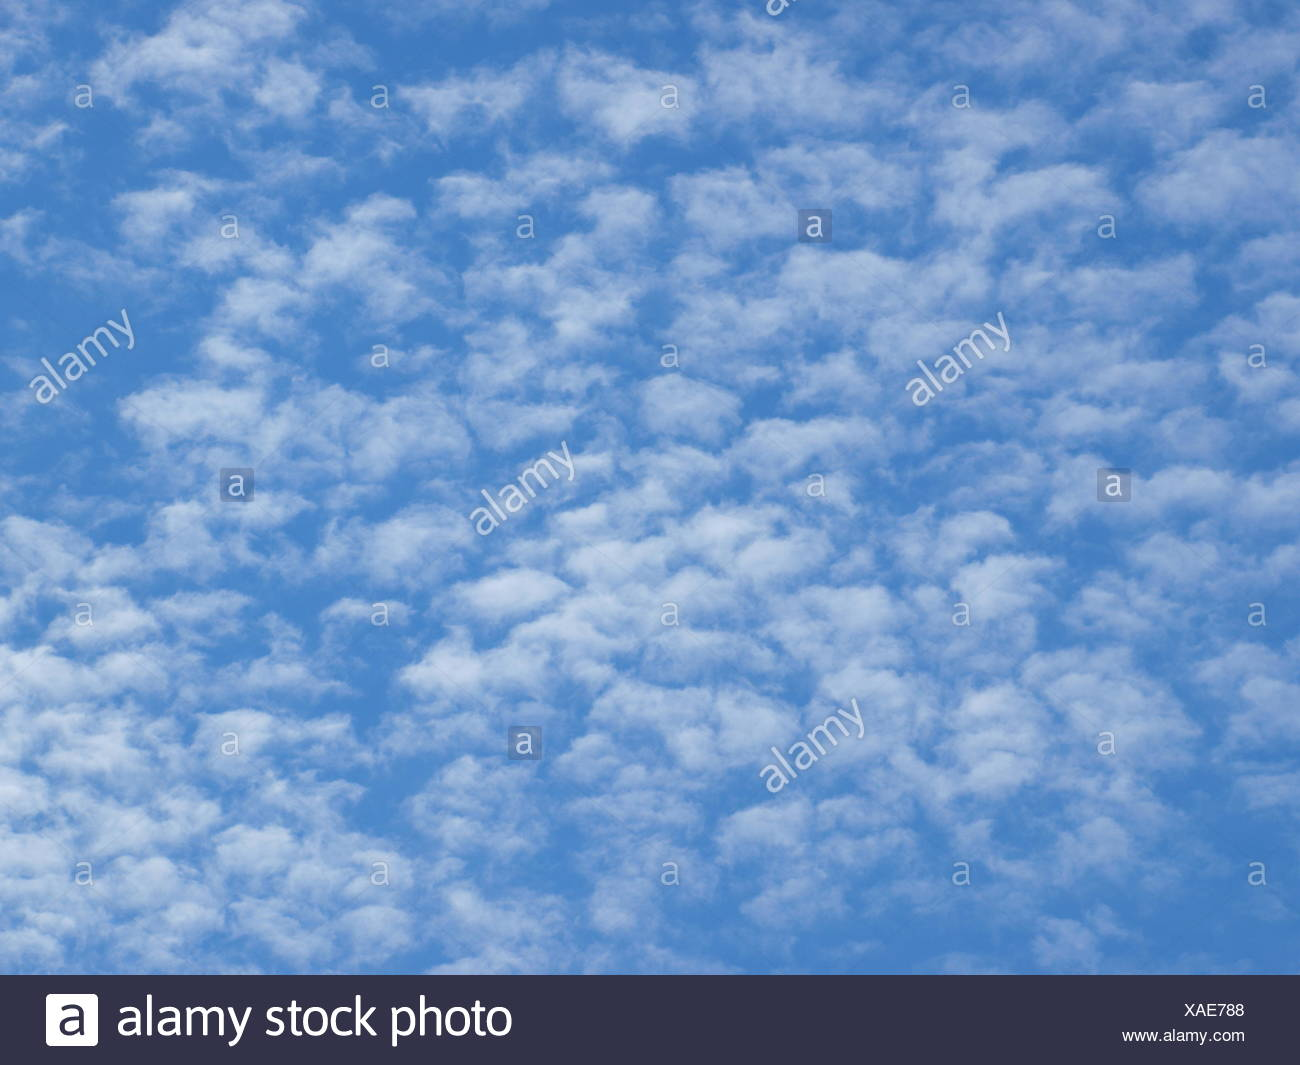 Fluffy clouds, Cirrocumulus - Stock Image